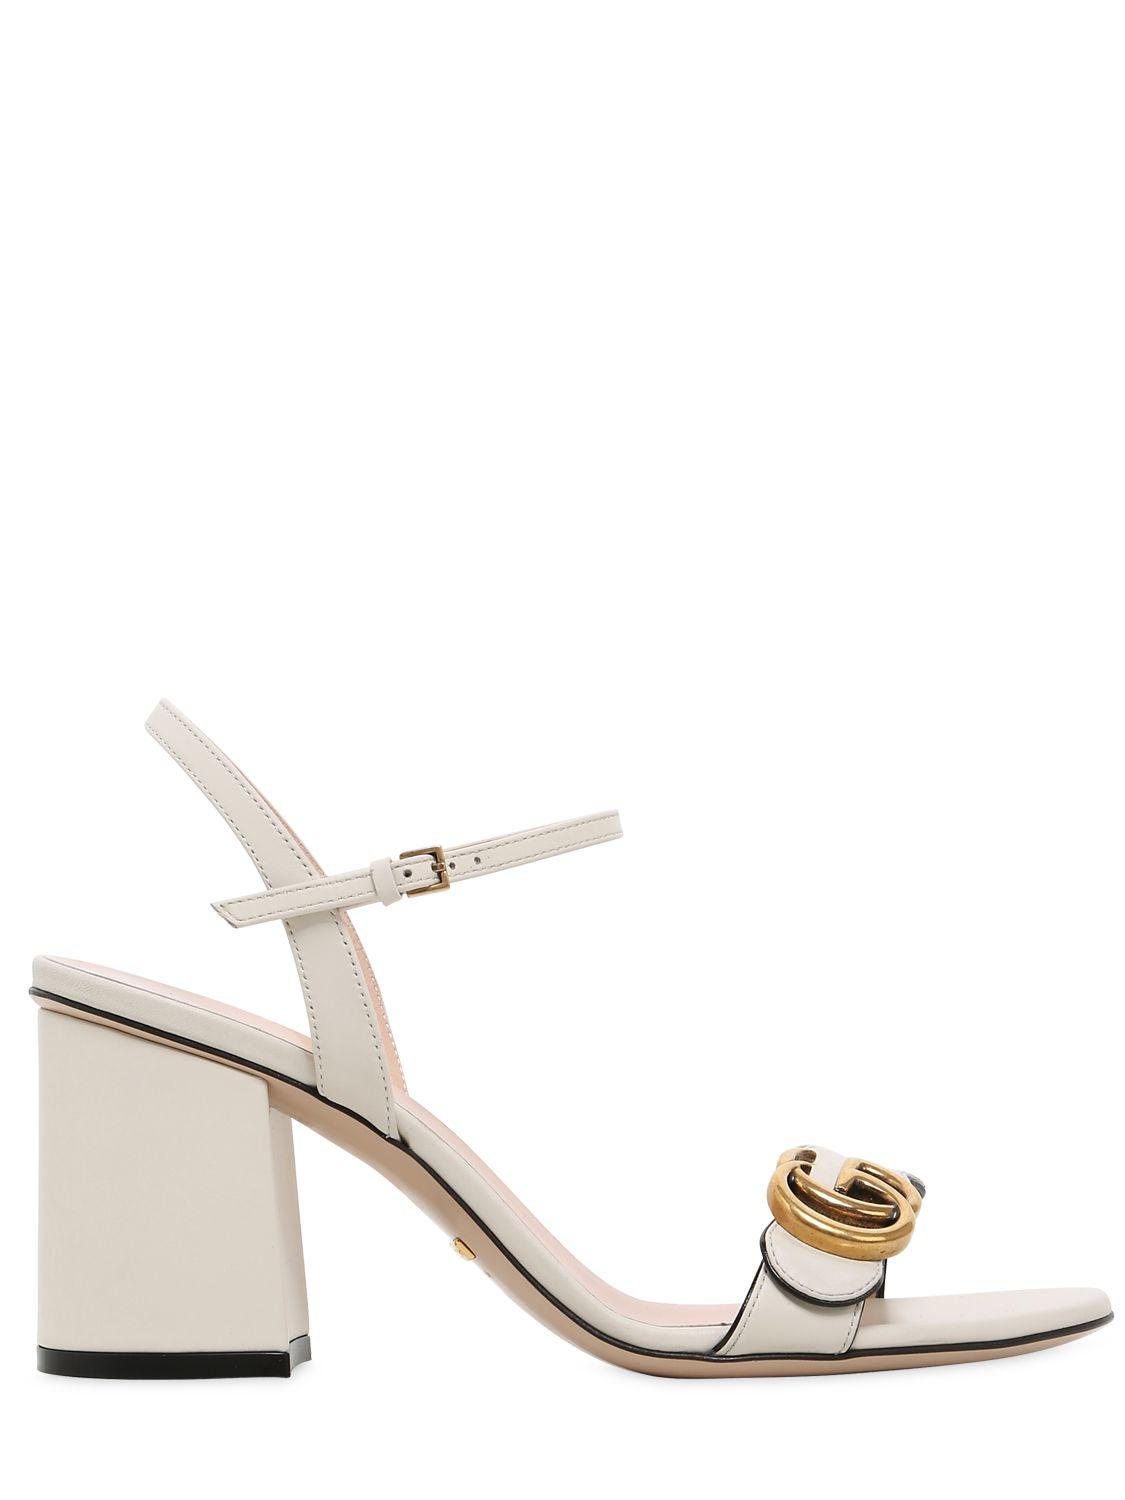 a6040fb4f96 Gucci 75mm Marmont Gg Leather Sandals in White - Lyst